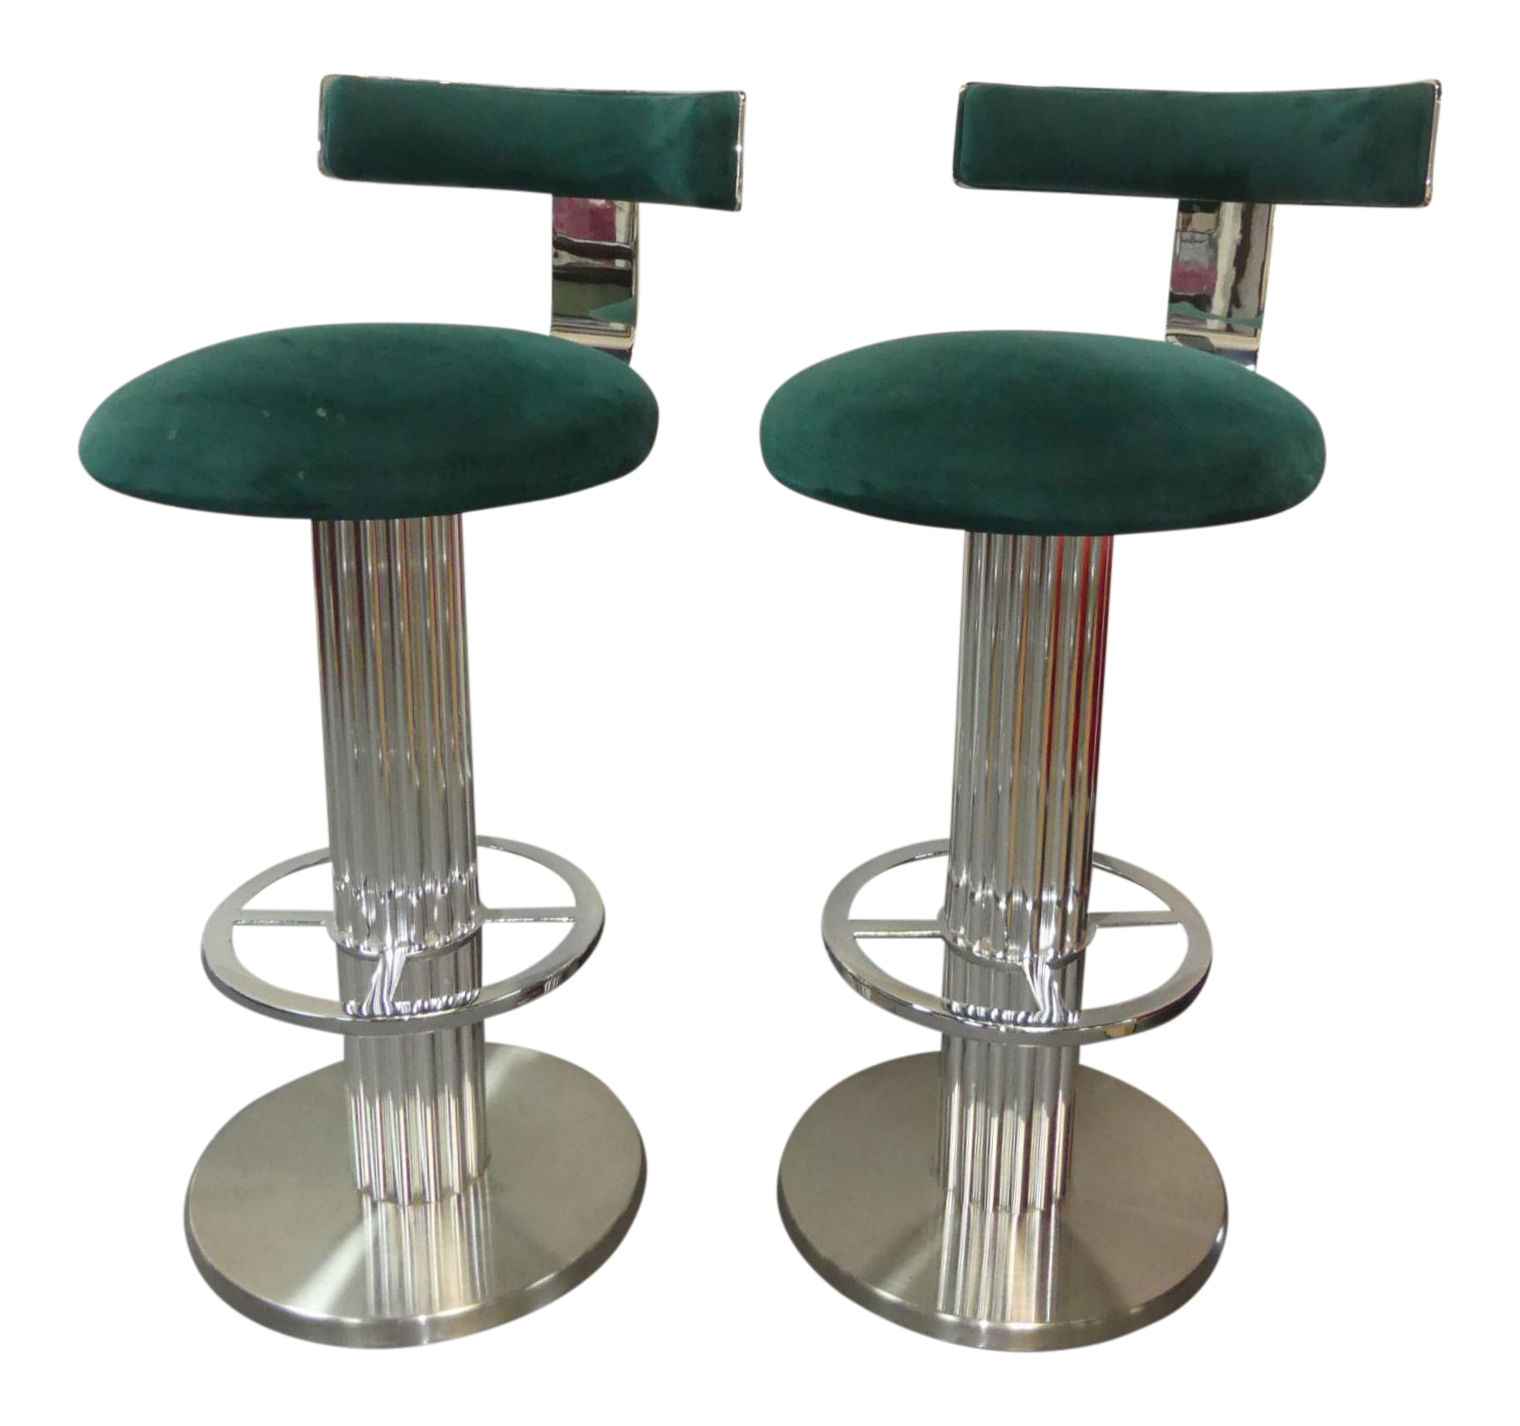 SOLD A Pair of Design for Leisure Excalibur Bar Stools